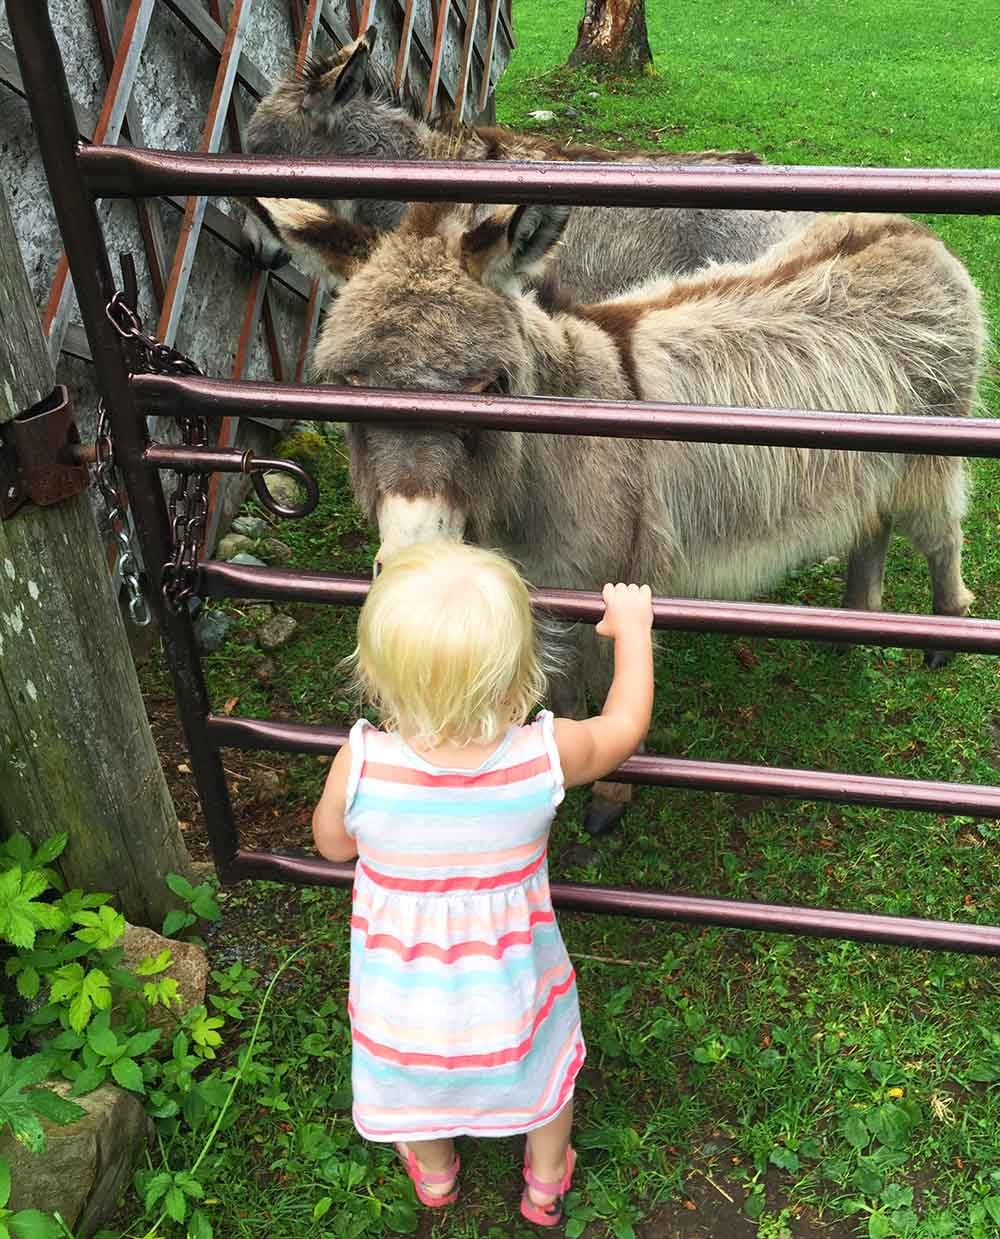 Rosie up close and personal with a miniature donkey at Sweetwater Lane Farm.